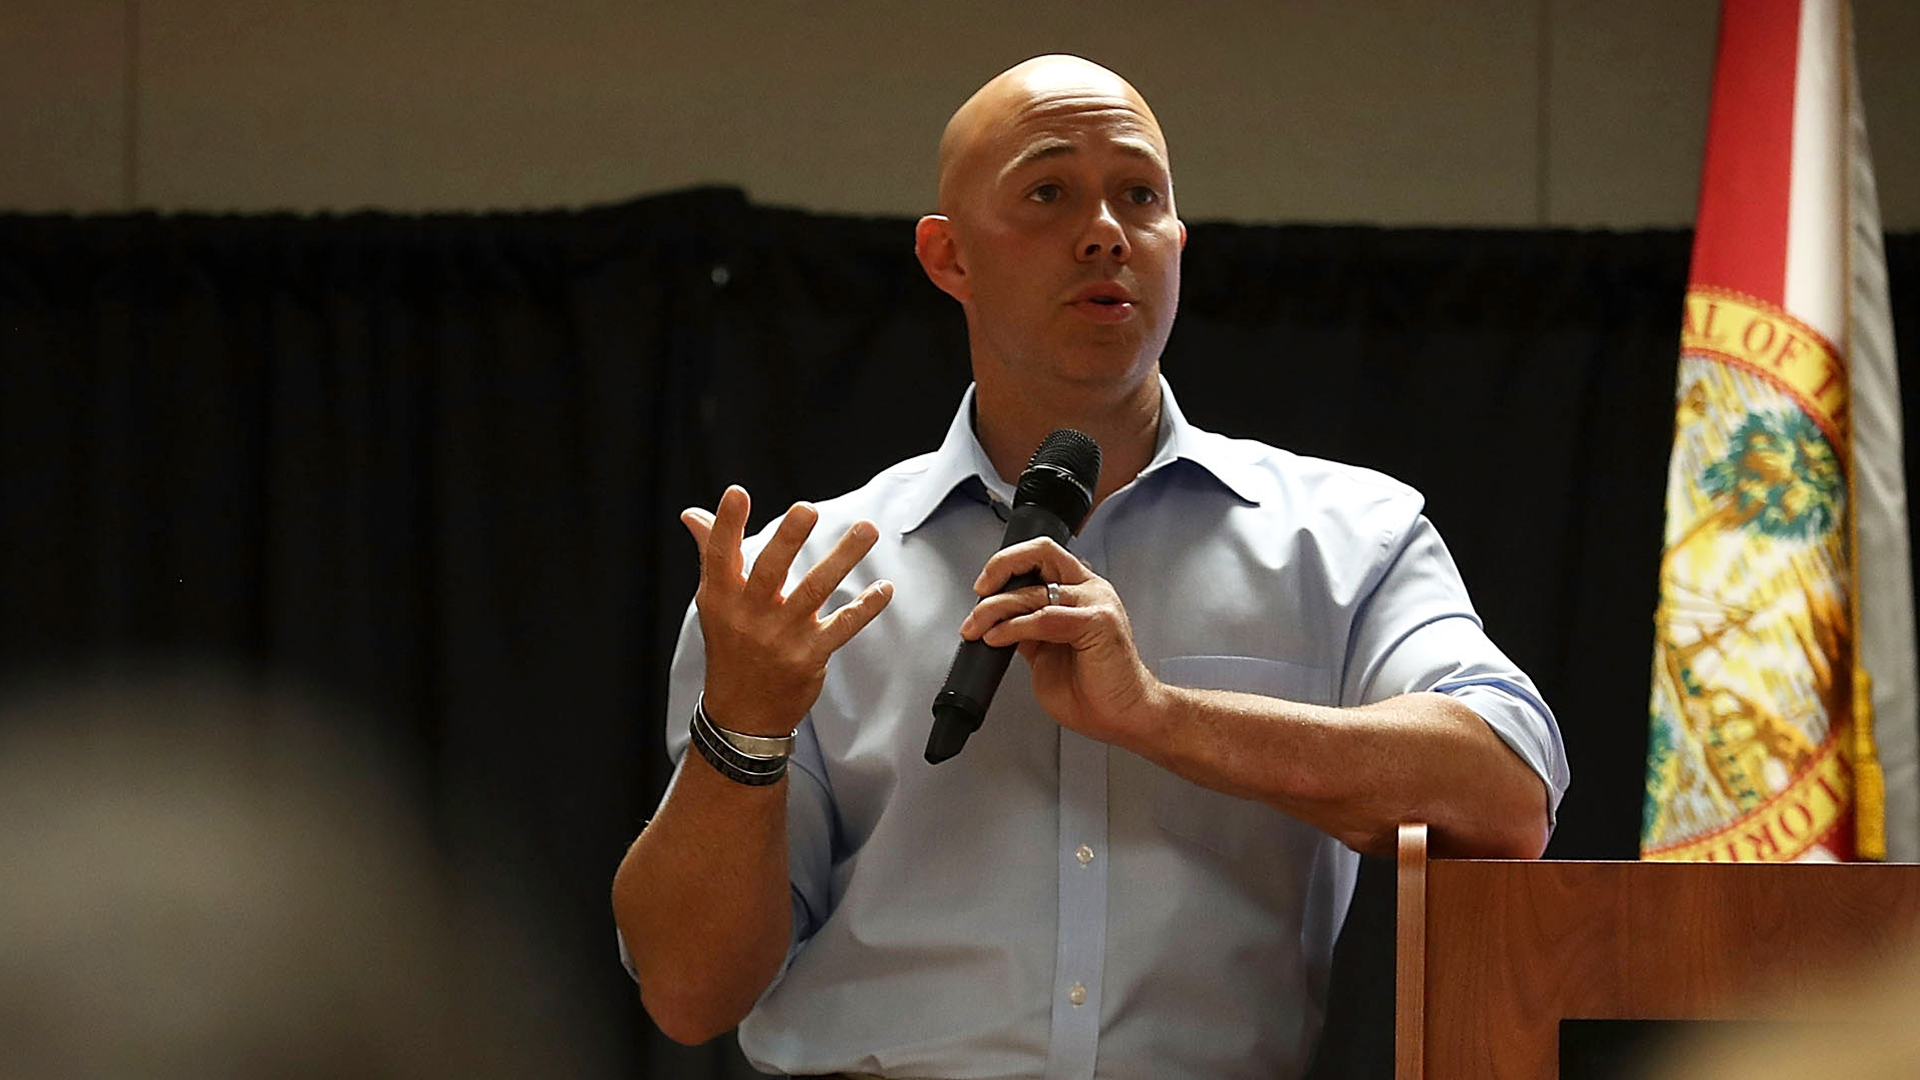 Rep. Brian Mast (R-FL) speaks during a town hall meeting at the Havert L. Fenn Center on Feb. 24, 2017, in Fort Pierce, Fla. Rep. Mast held the veteran's town hall meeting that ranged from topics on veterans, school choice, health care as well as issues surrounding President Donald Trump and his administration. (Credit: Joe Raedle/Getty Images)